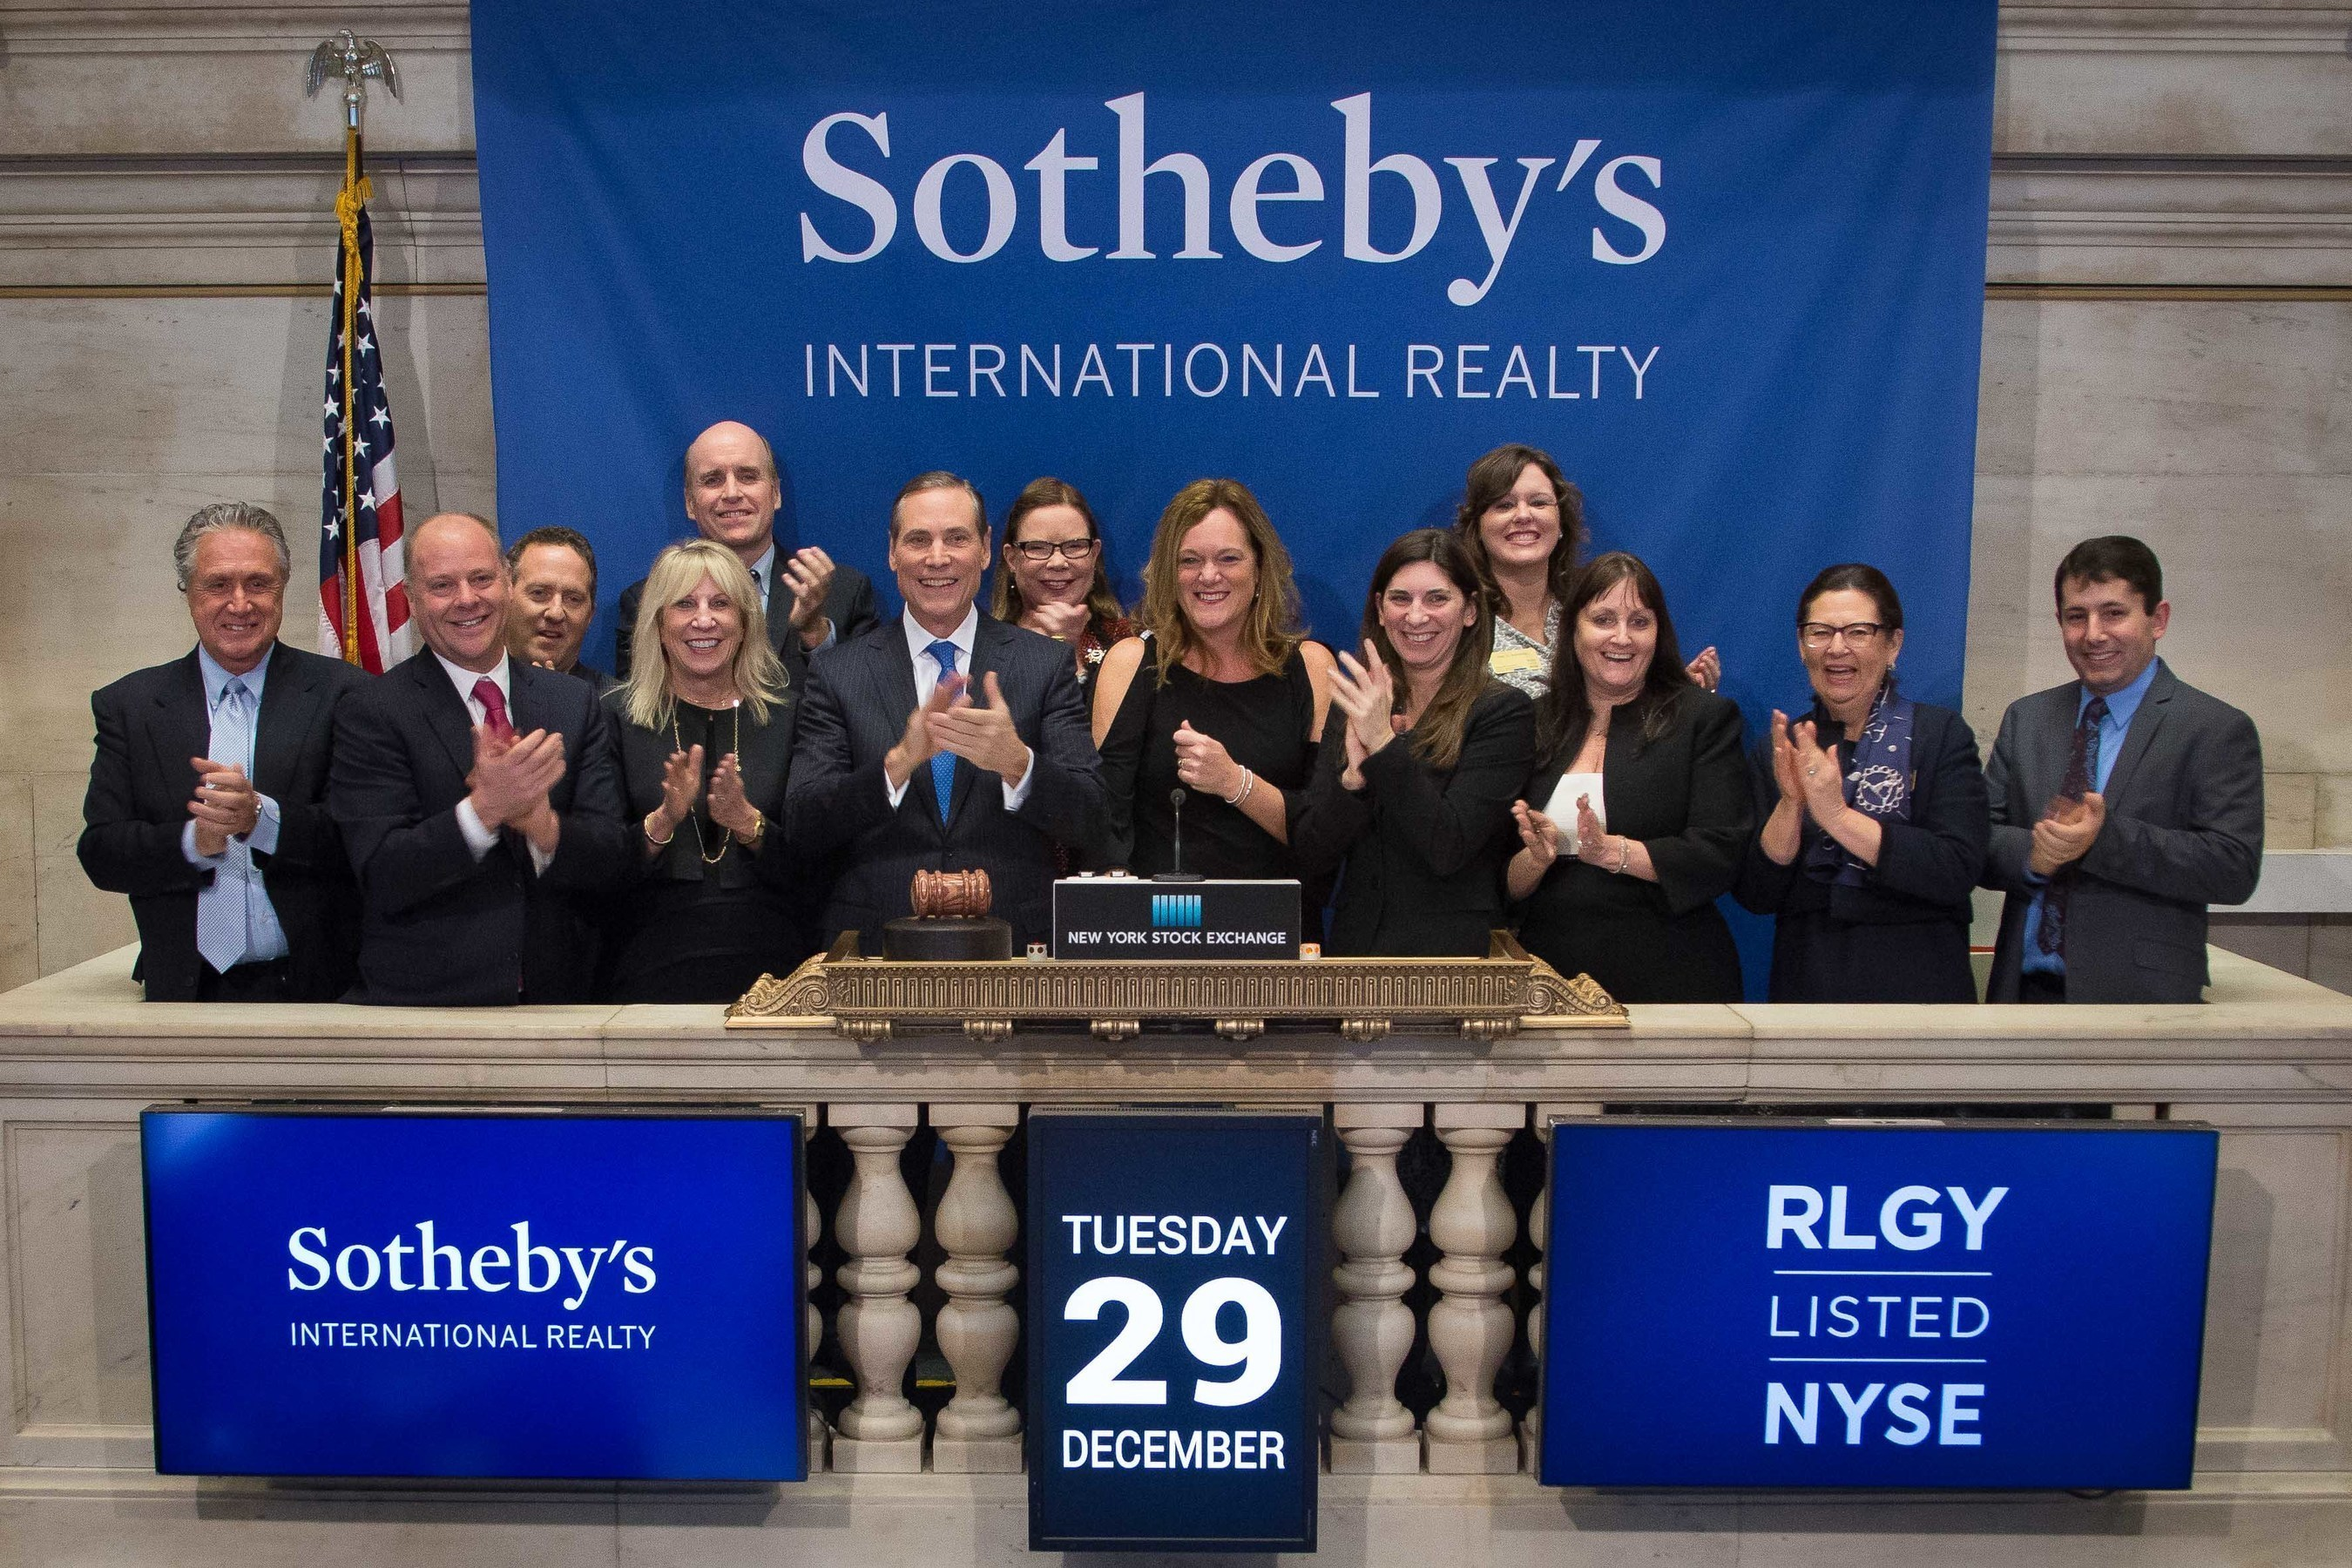 Representatives from Sotheby's International Realty Affiliates LLC, a subsidiary of Realogy Holdings Corp. (RLGY), visit the NYSE to mark the company's 40th Anniversary.  Chief Executive Officer Philip White, joined by Wendy Purvey, chief marketing officer, ring The Closing Bell(R). Photo Credit: NYSE/Valerie Caviness